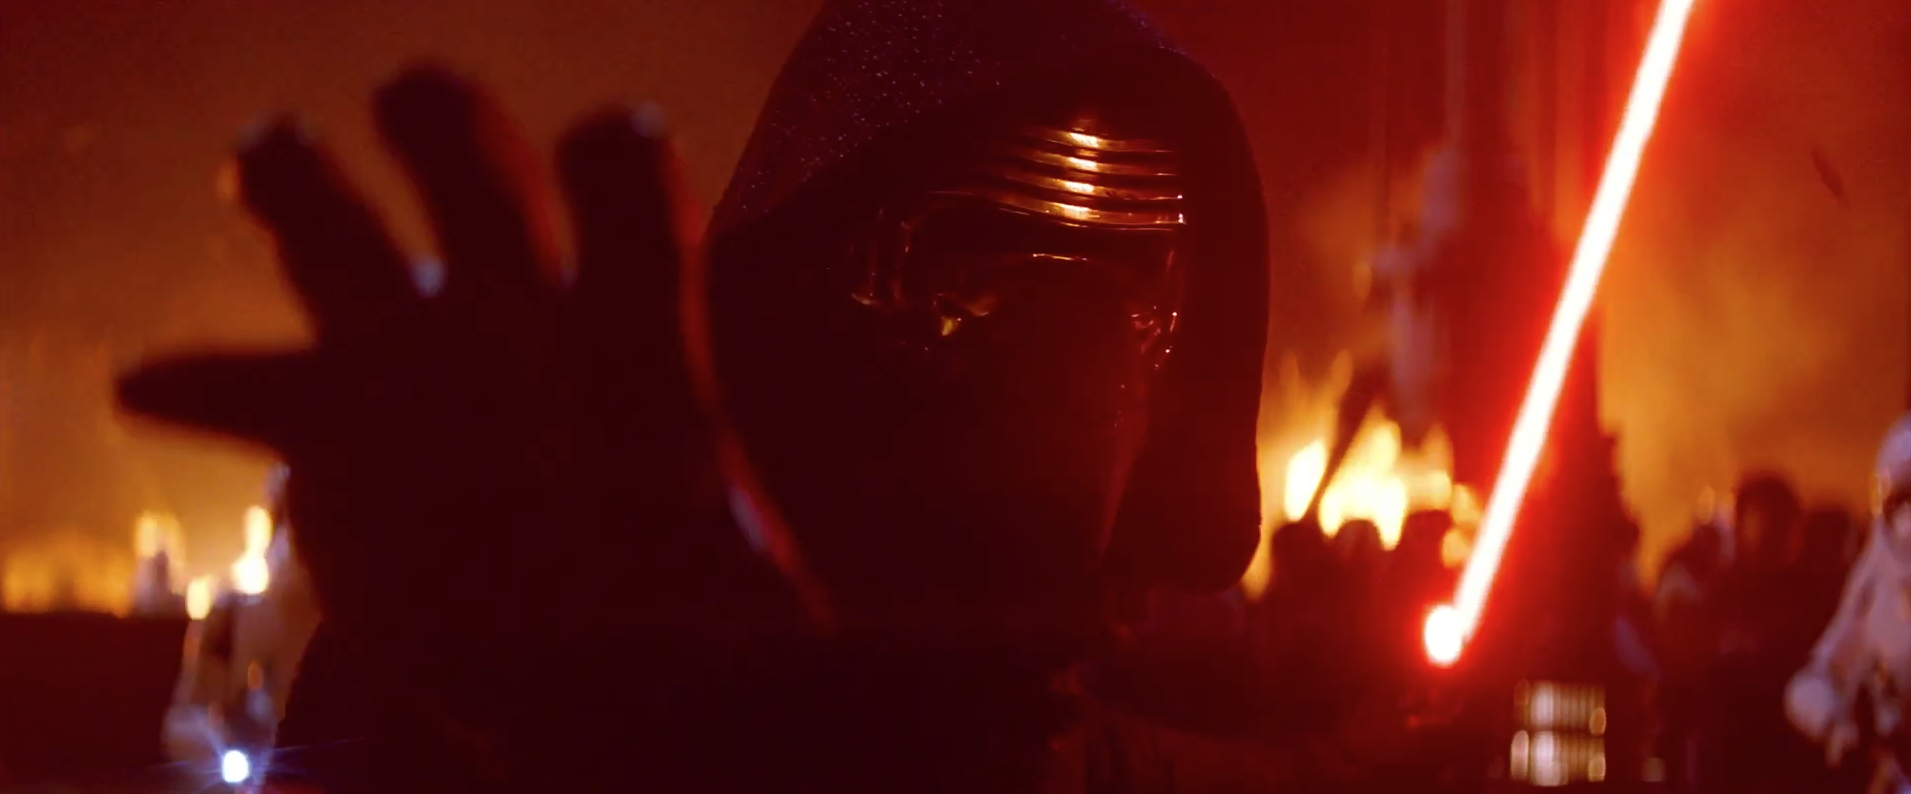 J.J. Abrams reveals new information about Kylo Ren's interrogation scene